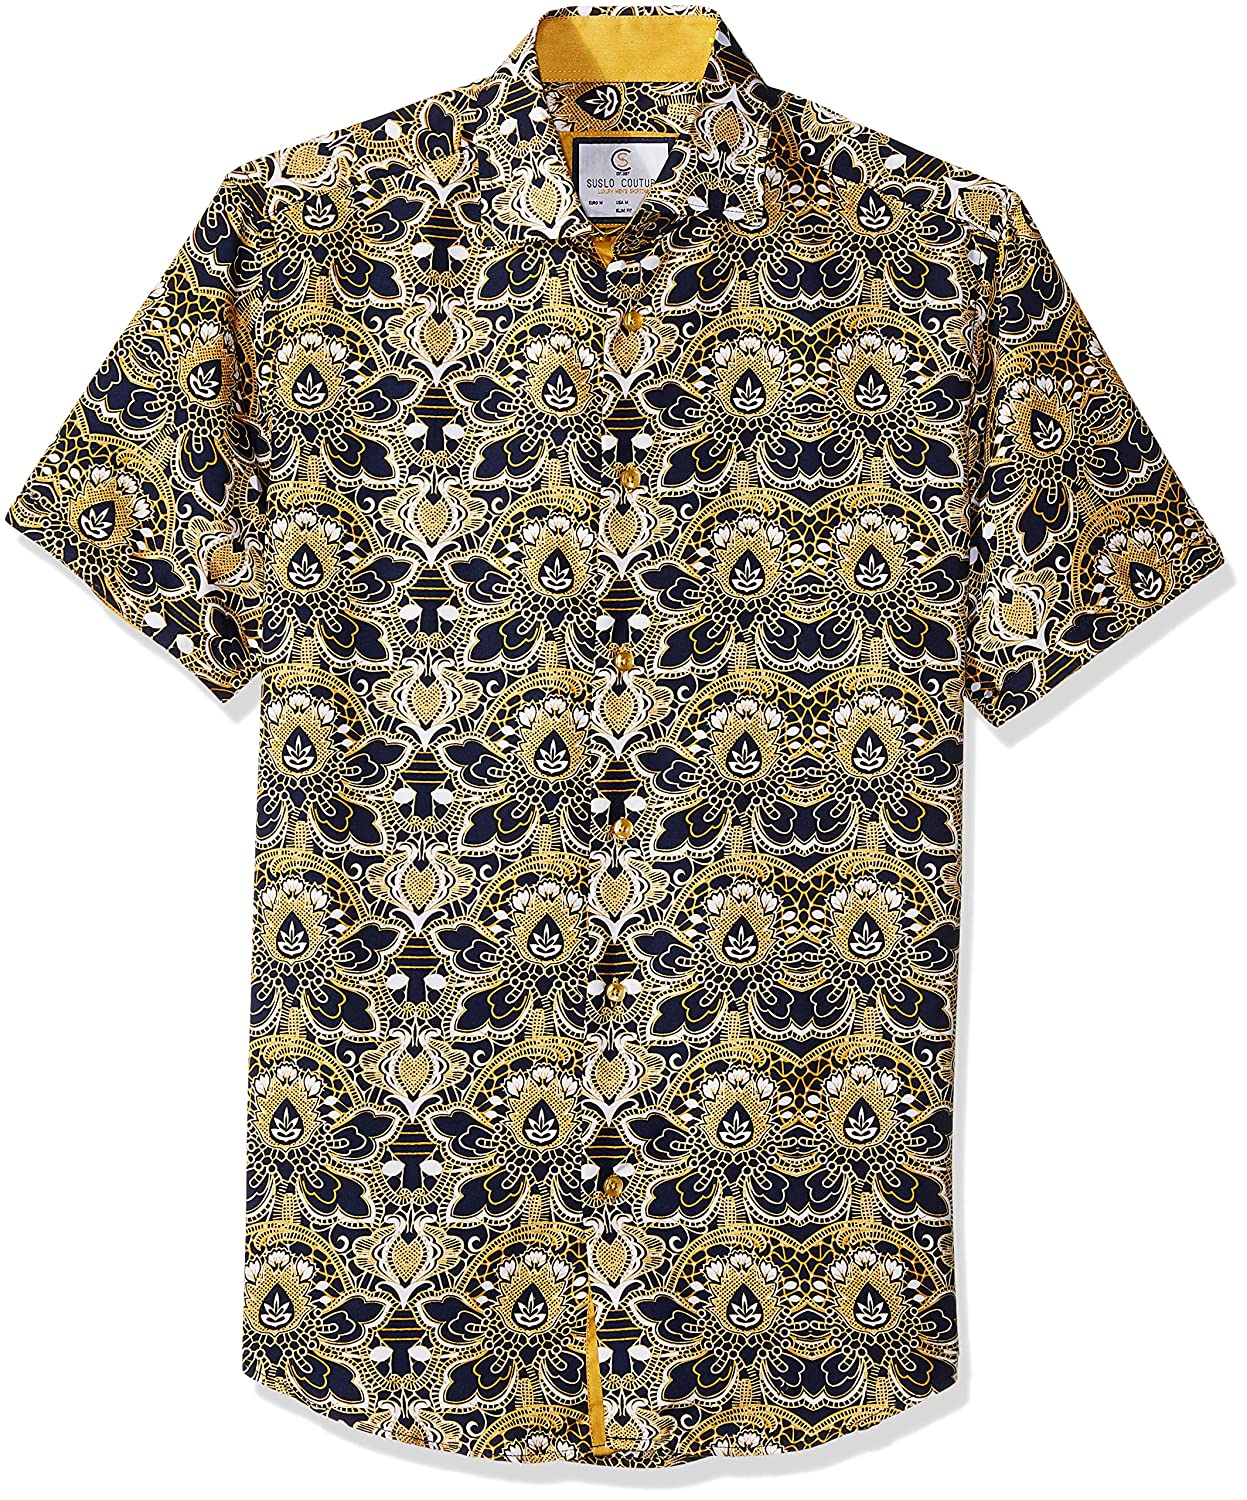 Azaro Uomo Mens Short Sleeve Button Down Shirt Casual Dress Loud Slim Fit